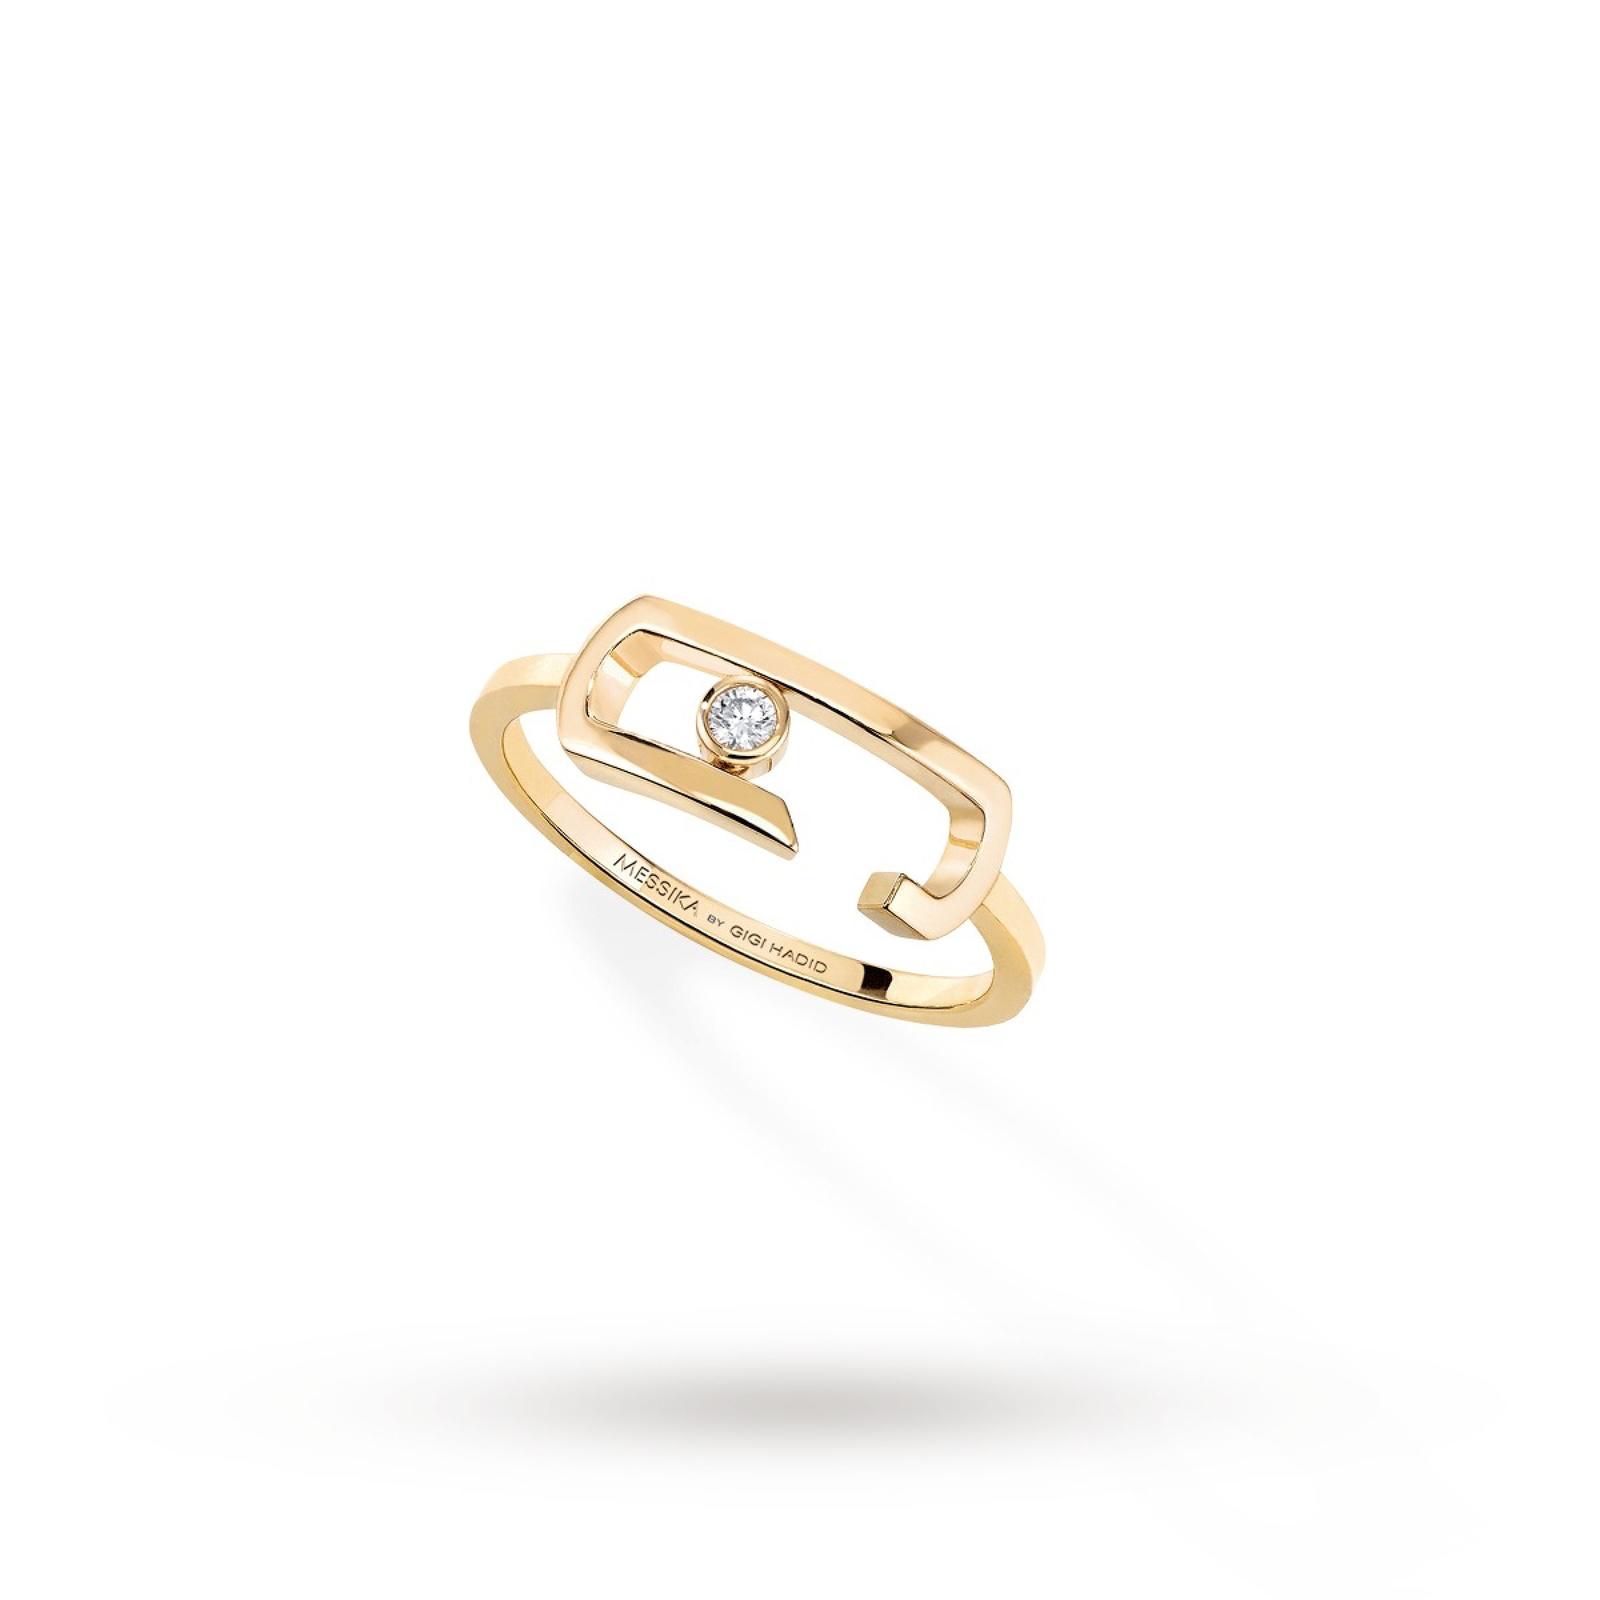 jewely ellie plain minimalist simple product gold maui j rings ejm